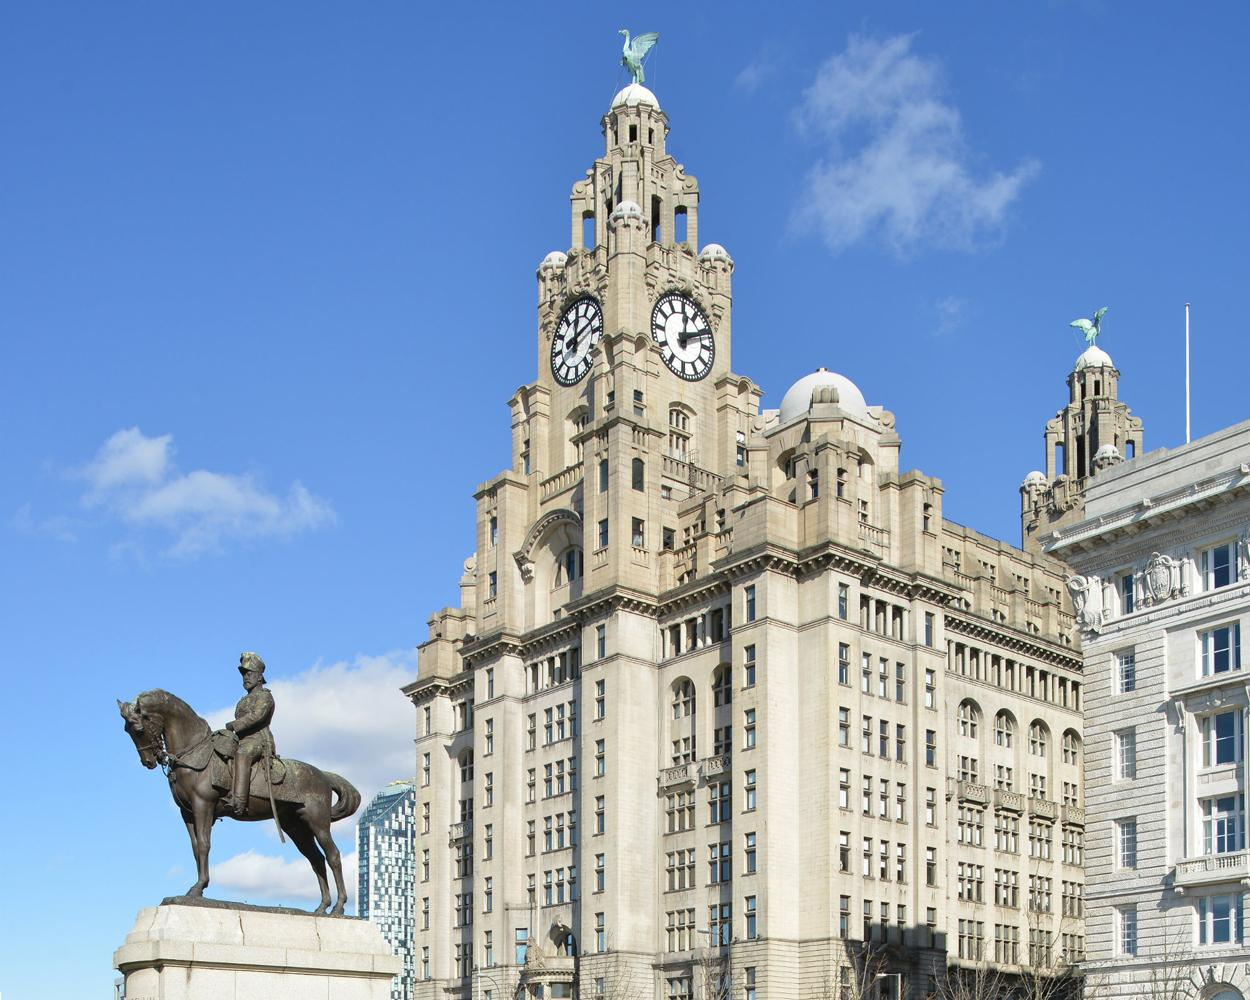 The visitor attraction will take guests on a journey through Liverpool's rich cultural heritage